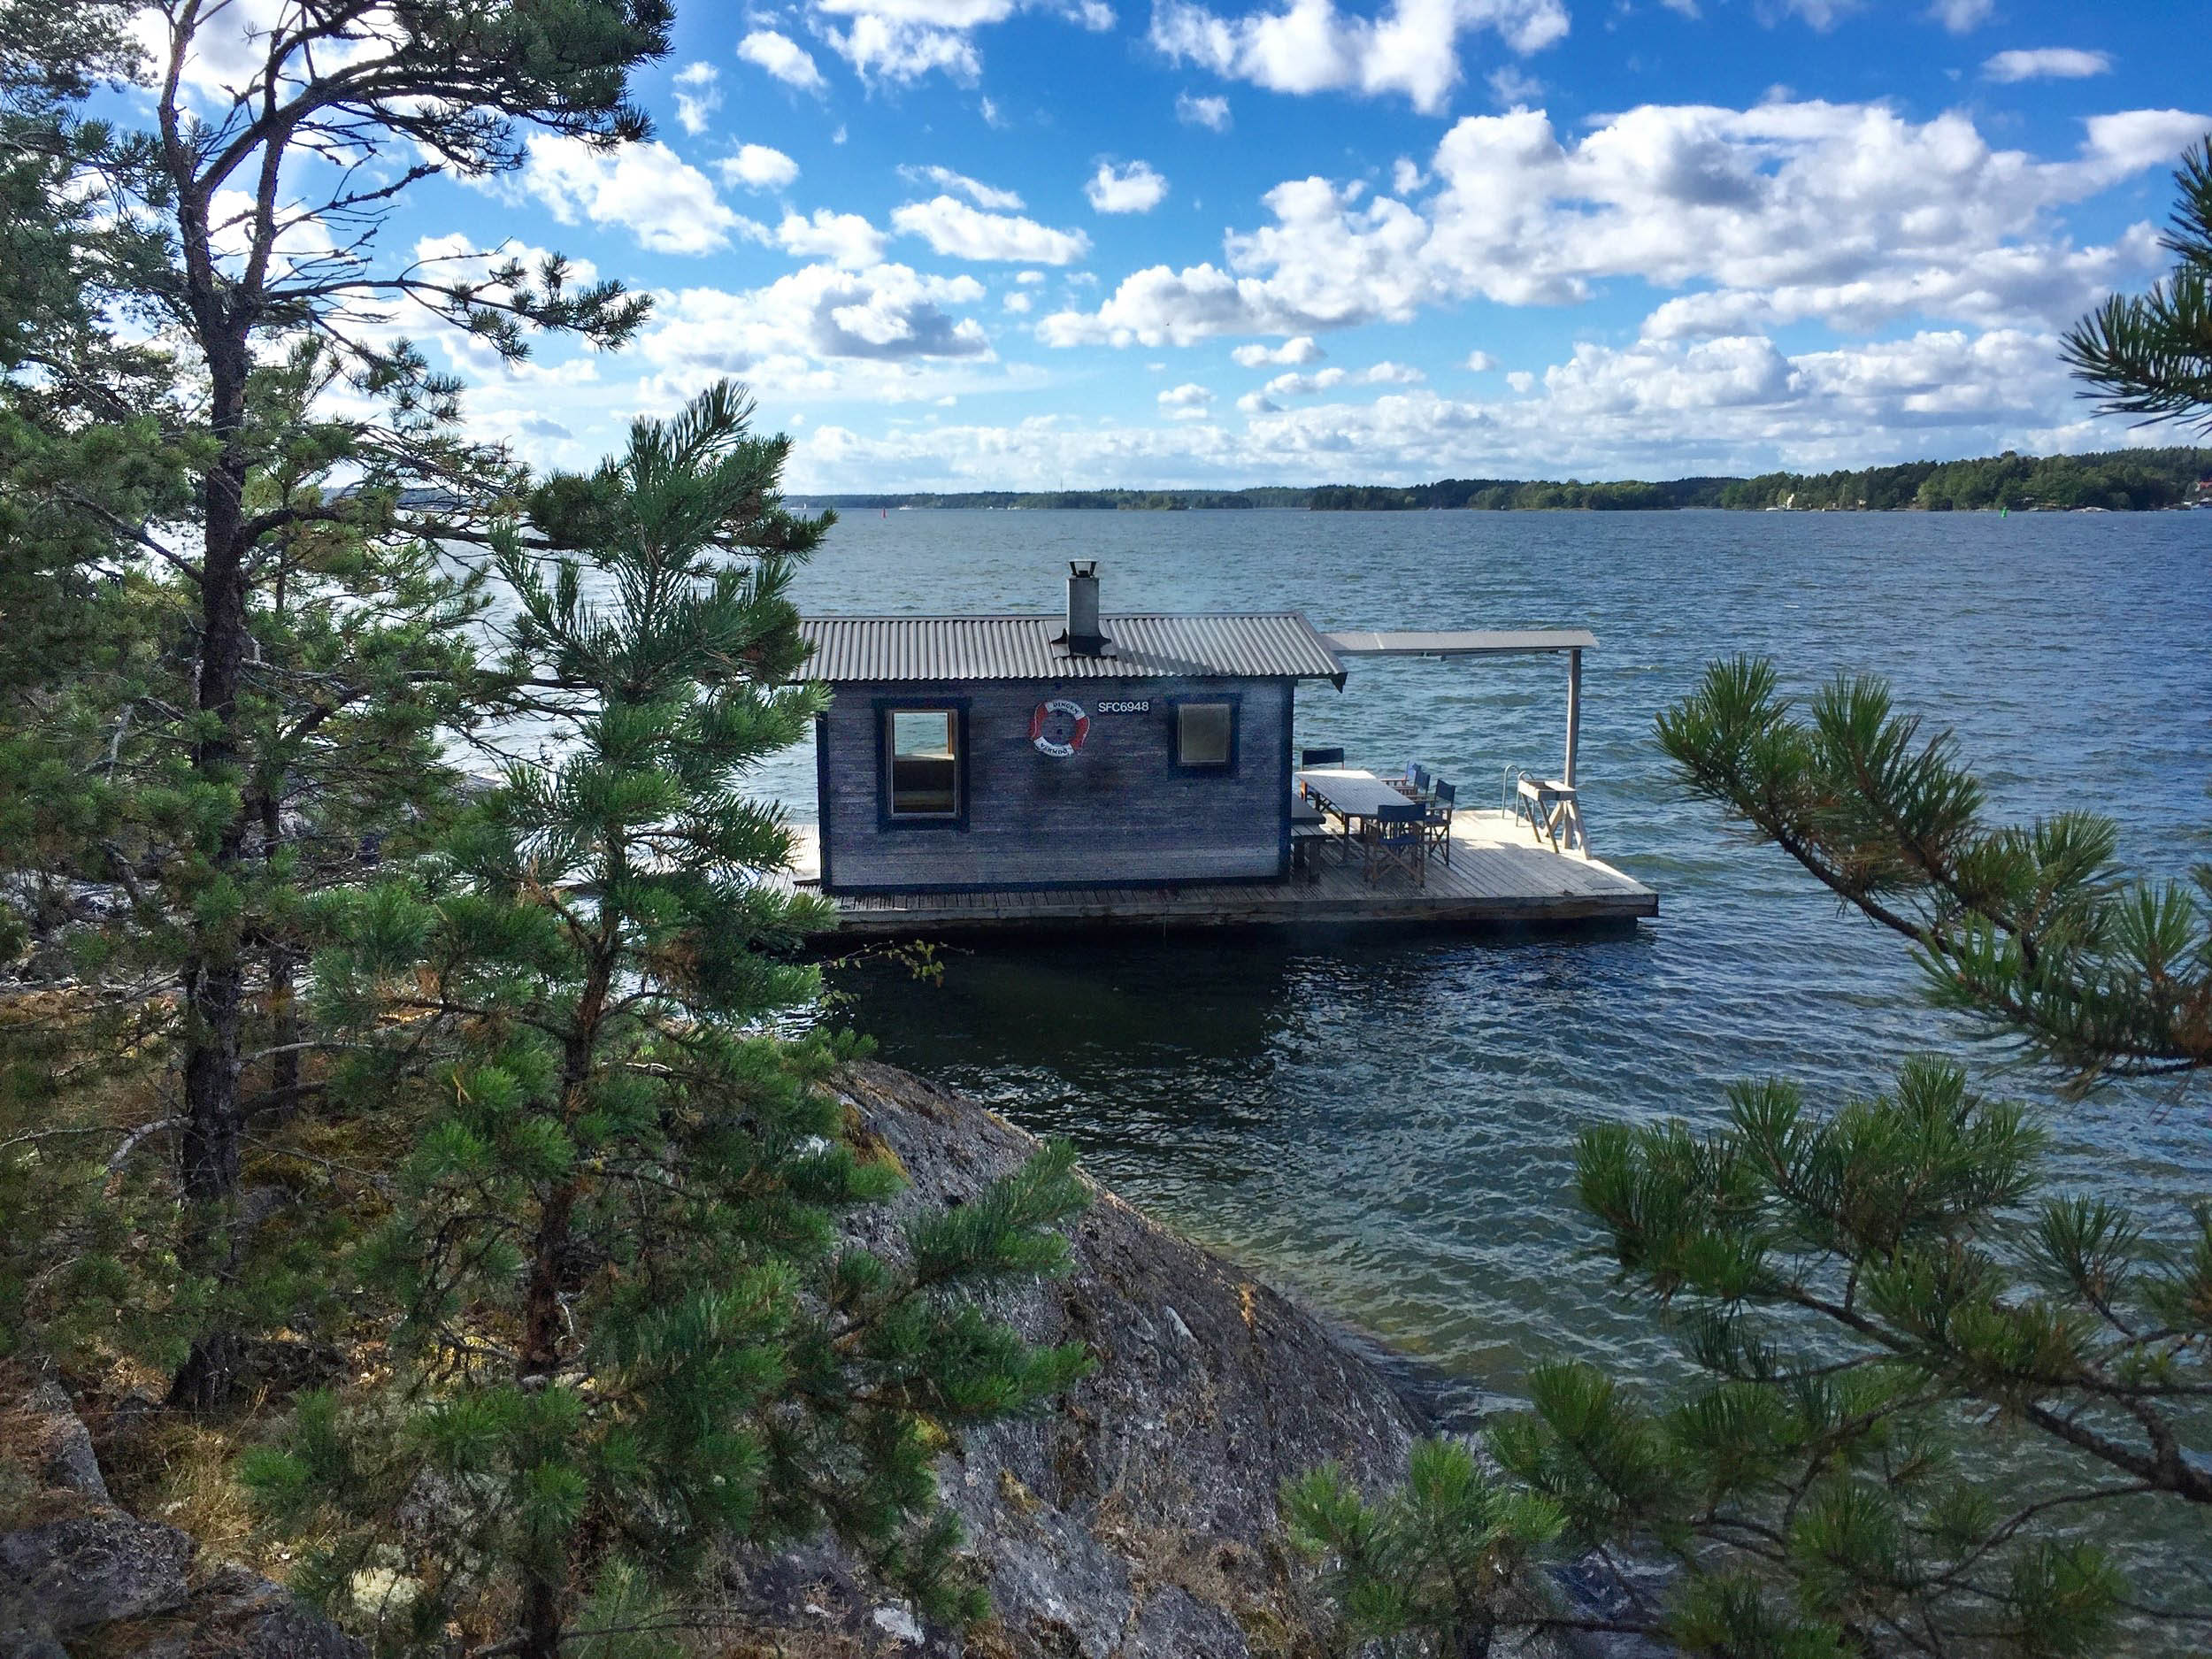 Sweden_Archipelago_Sauna_Weston_Table.jpg